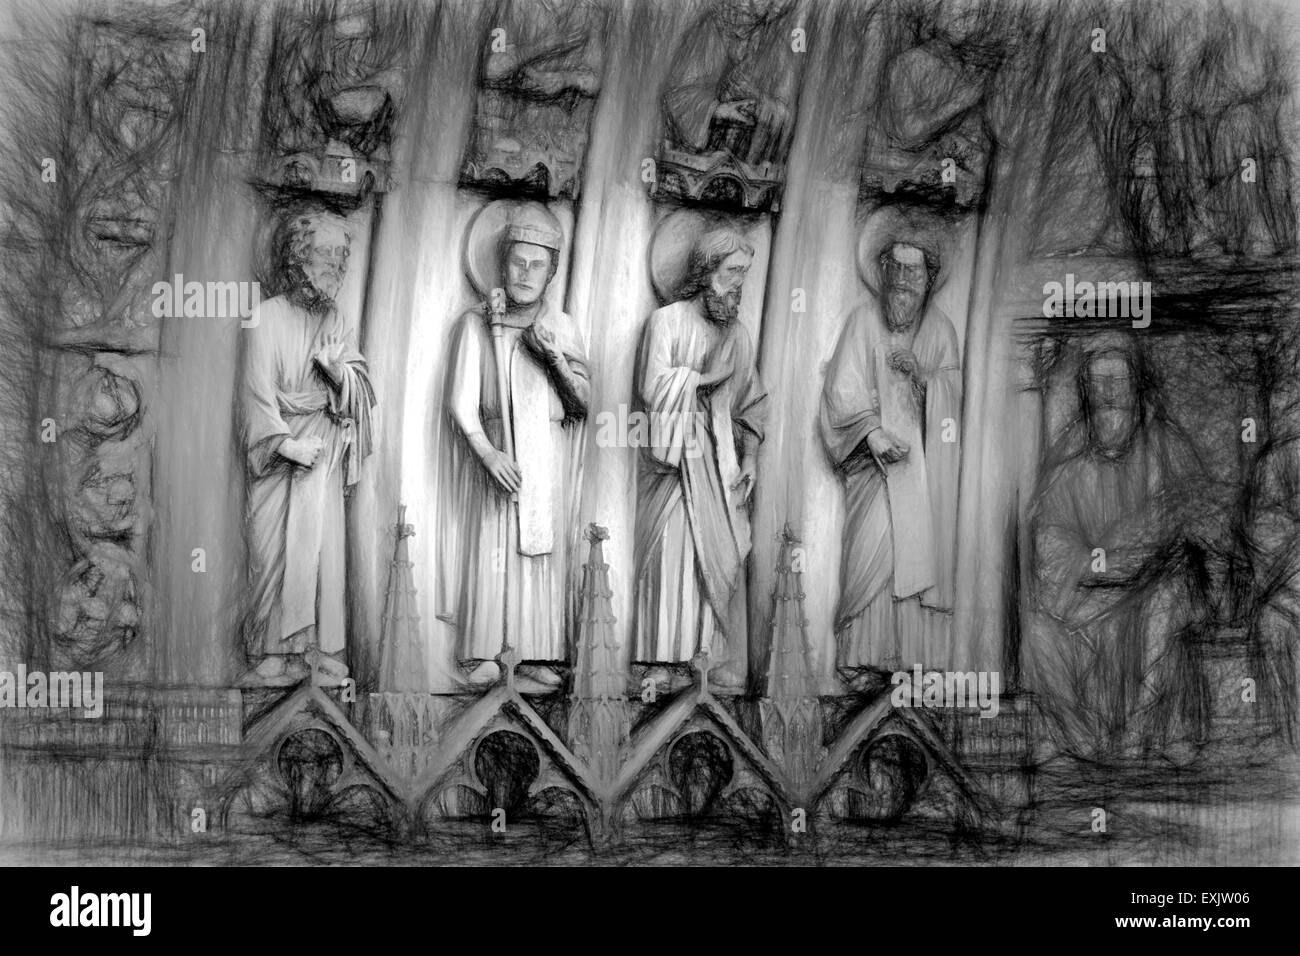 Black and white image of stone saints on the front of a cathedral - Stock Image